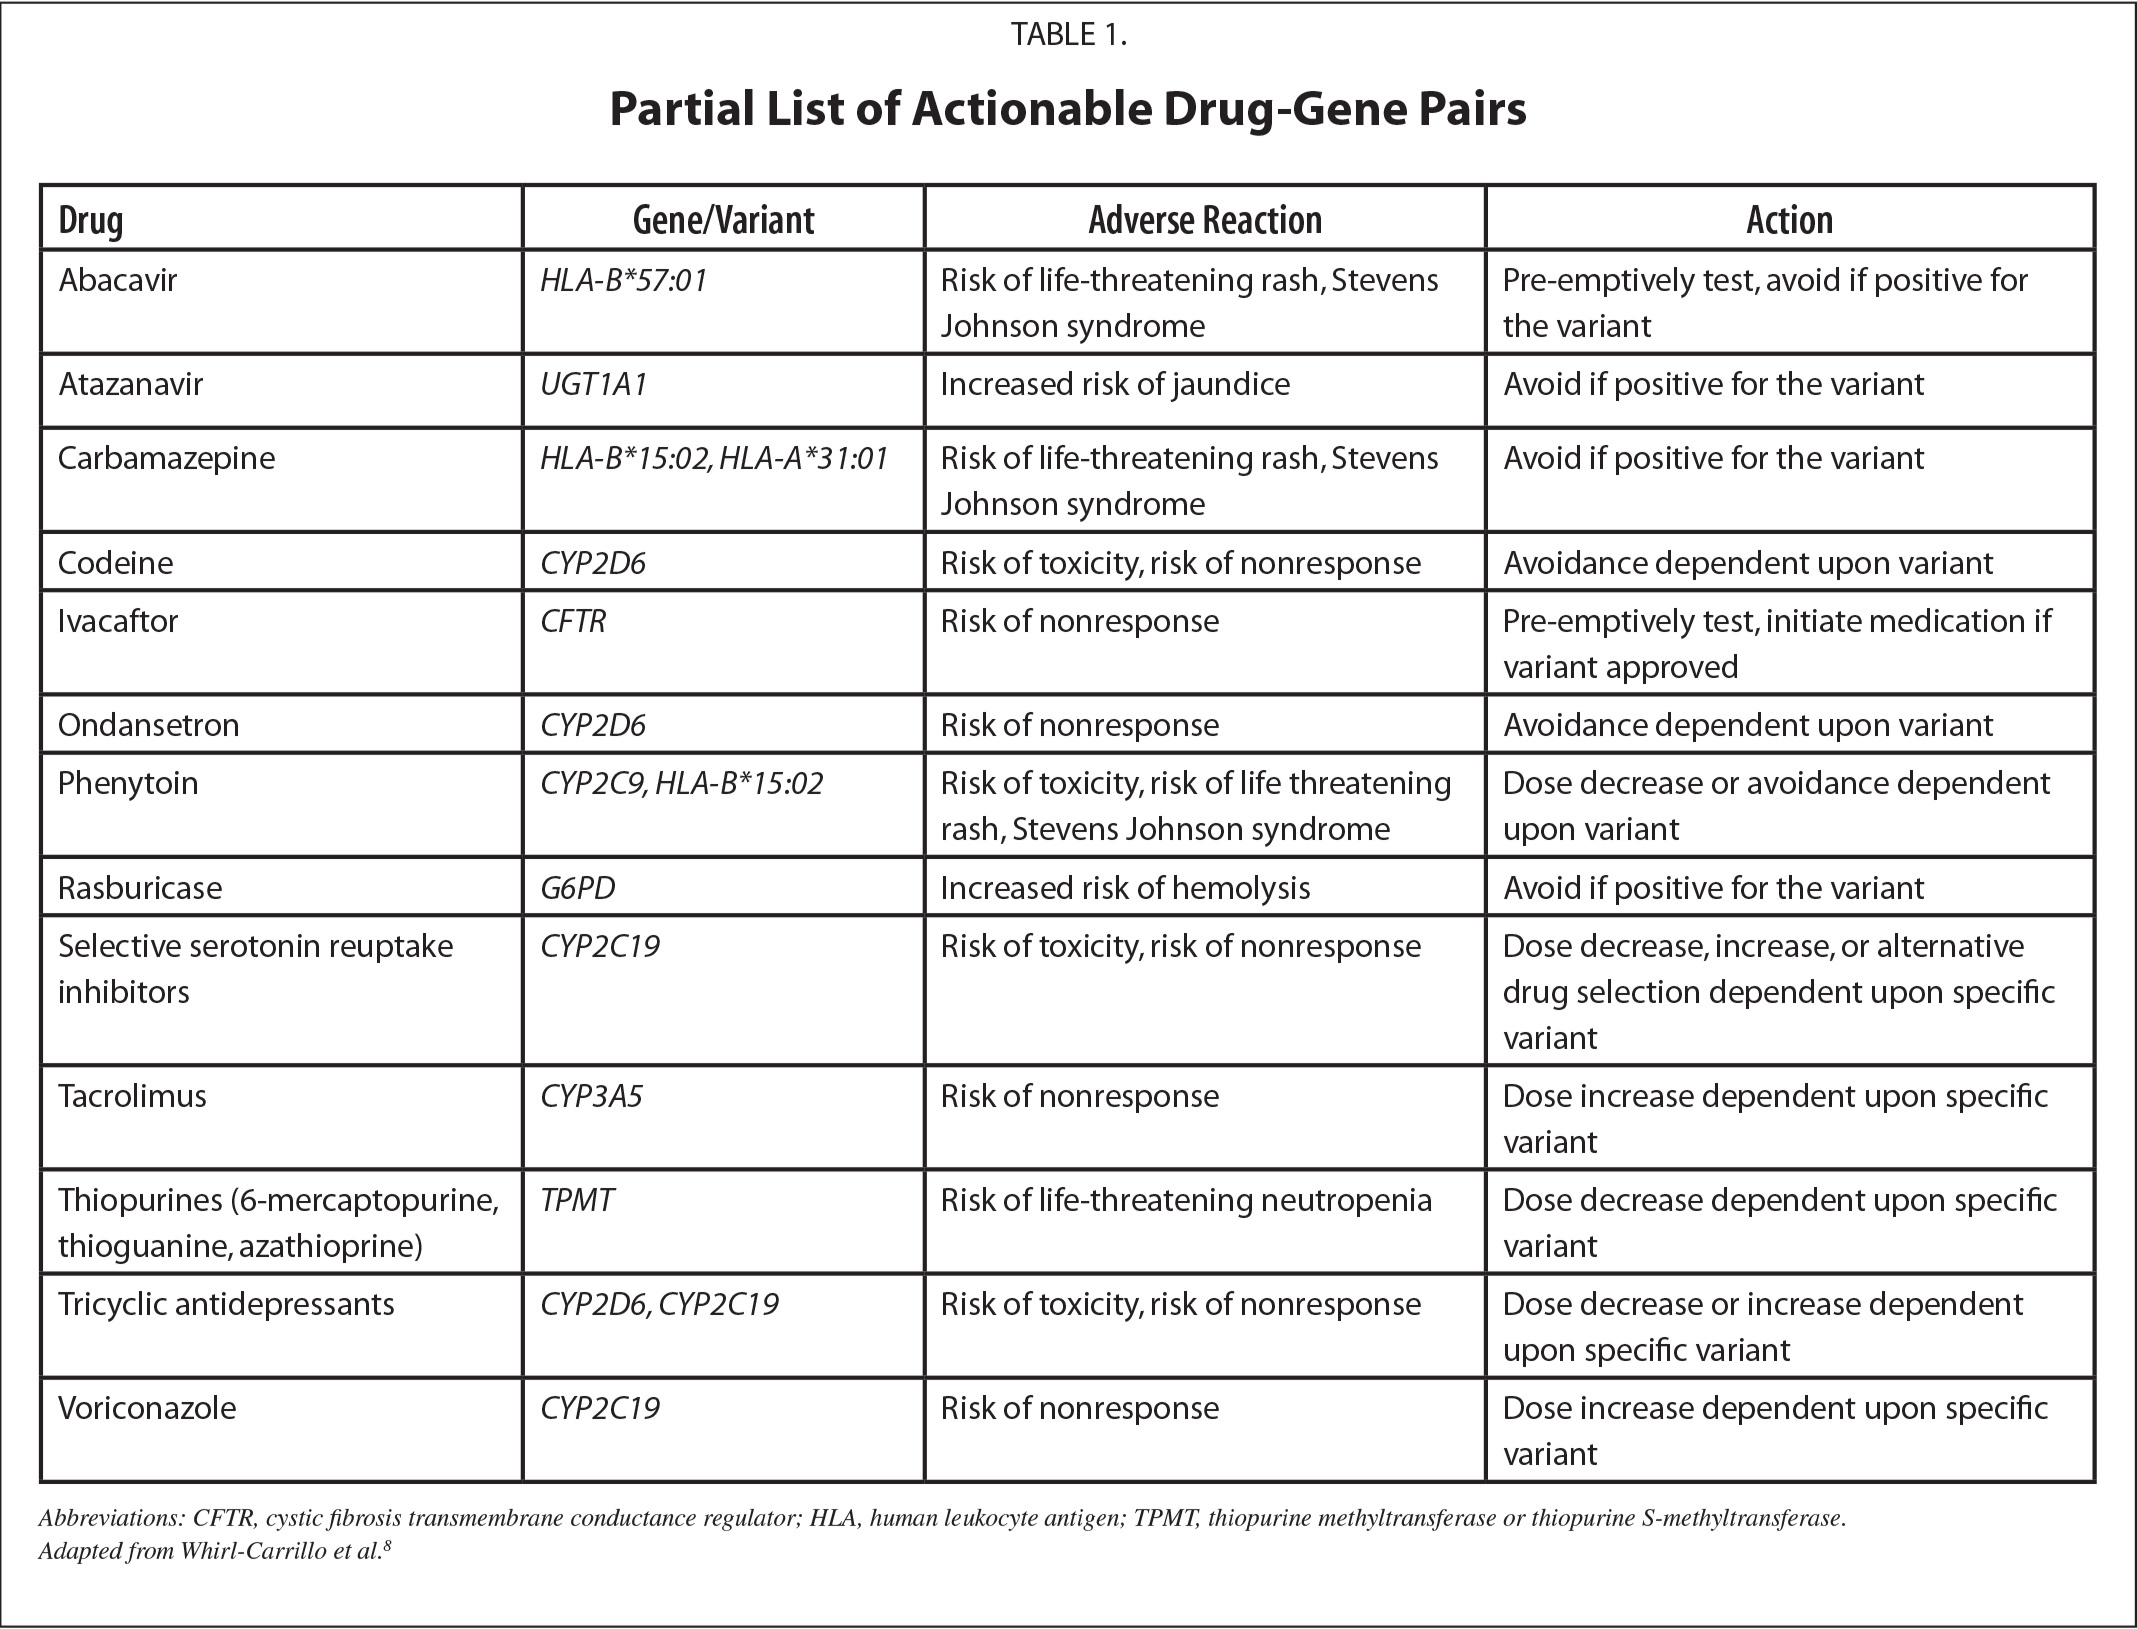 Partial List of Actionable Drug-Gene Pairs